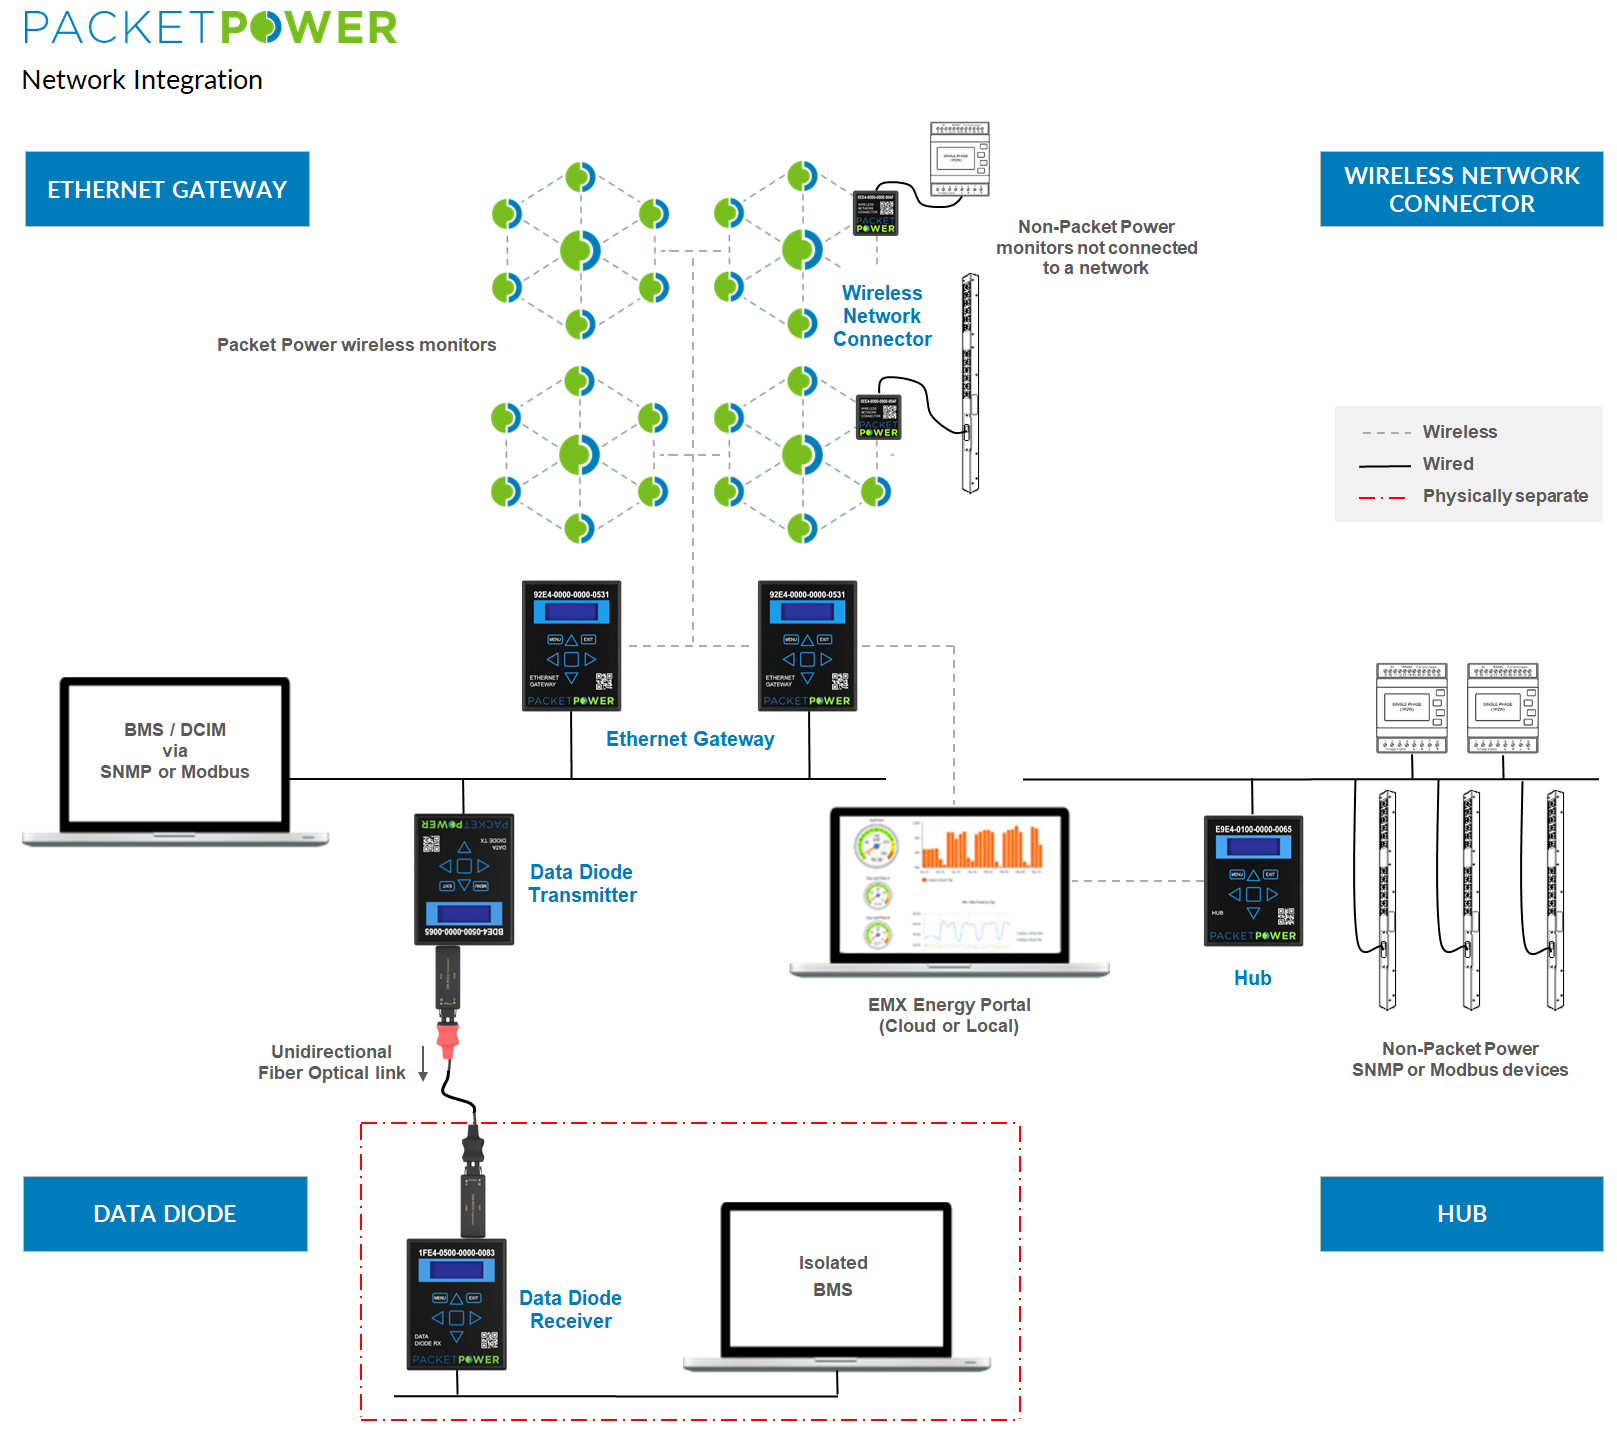 Packet Power Network Integration solutions overview